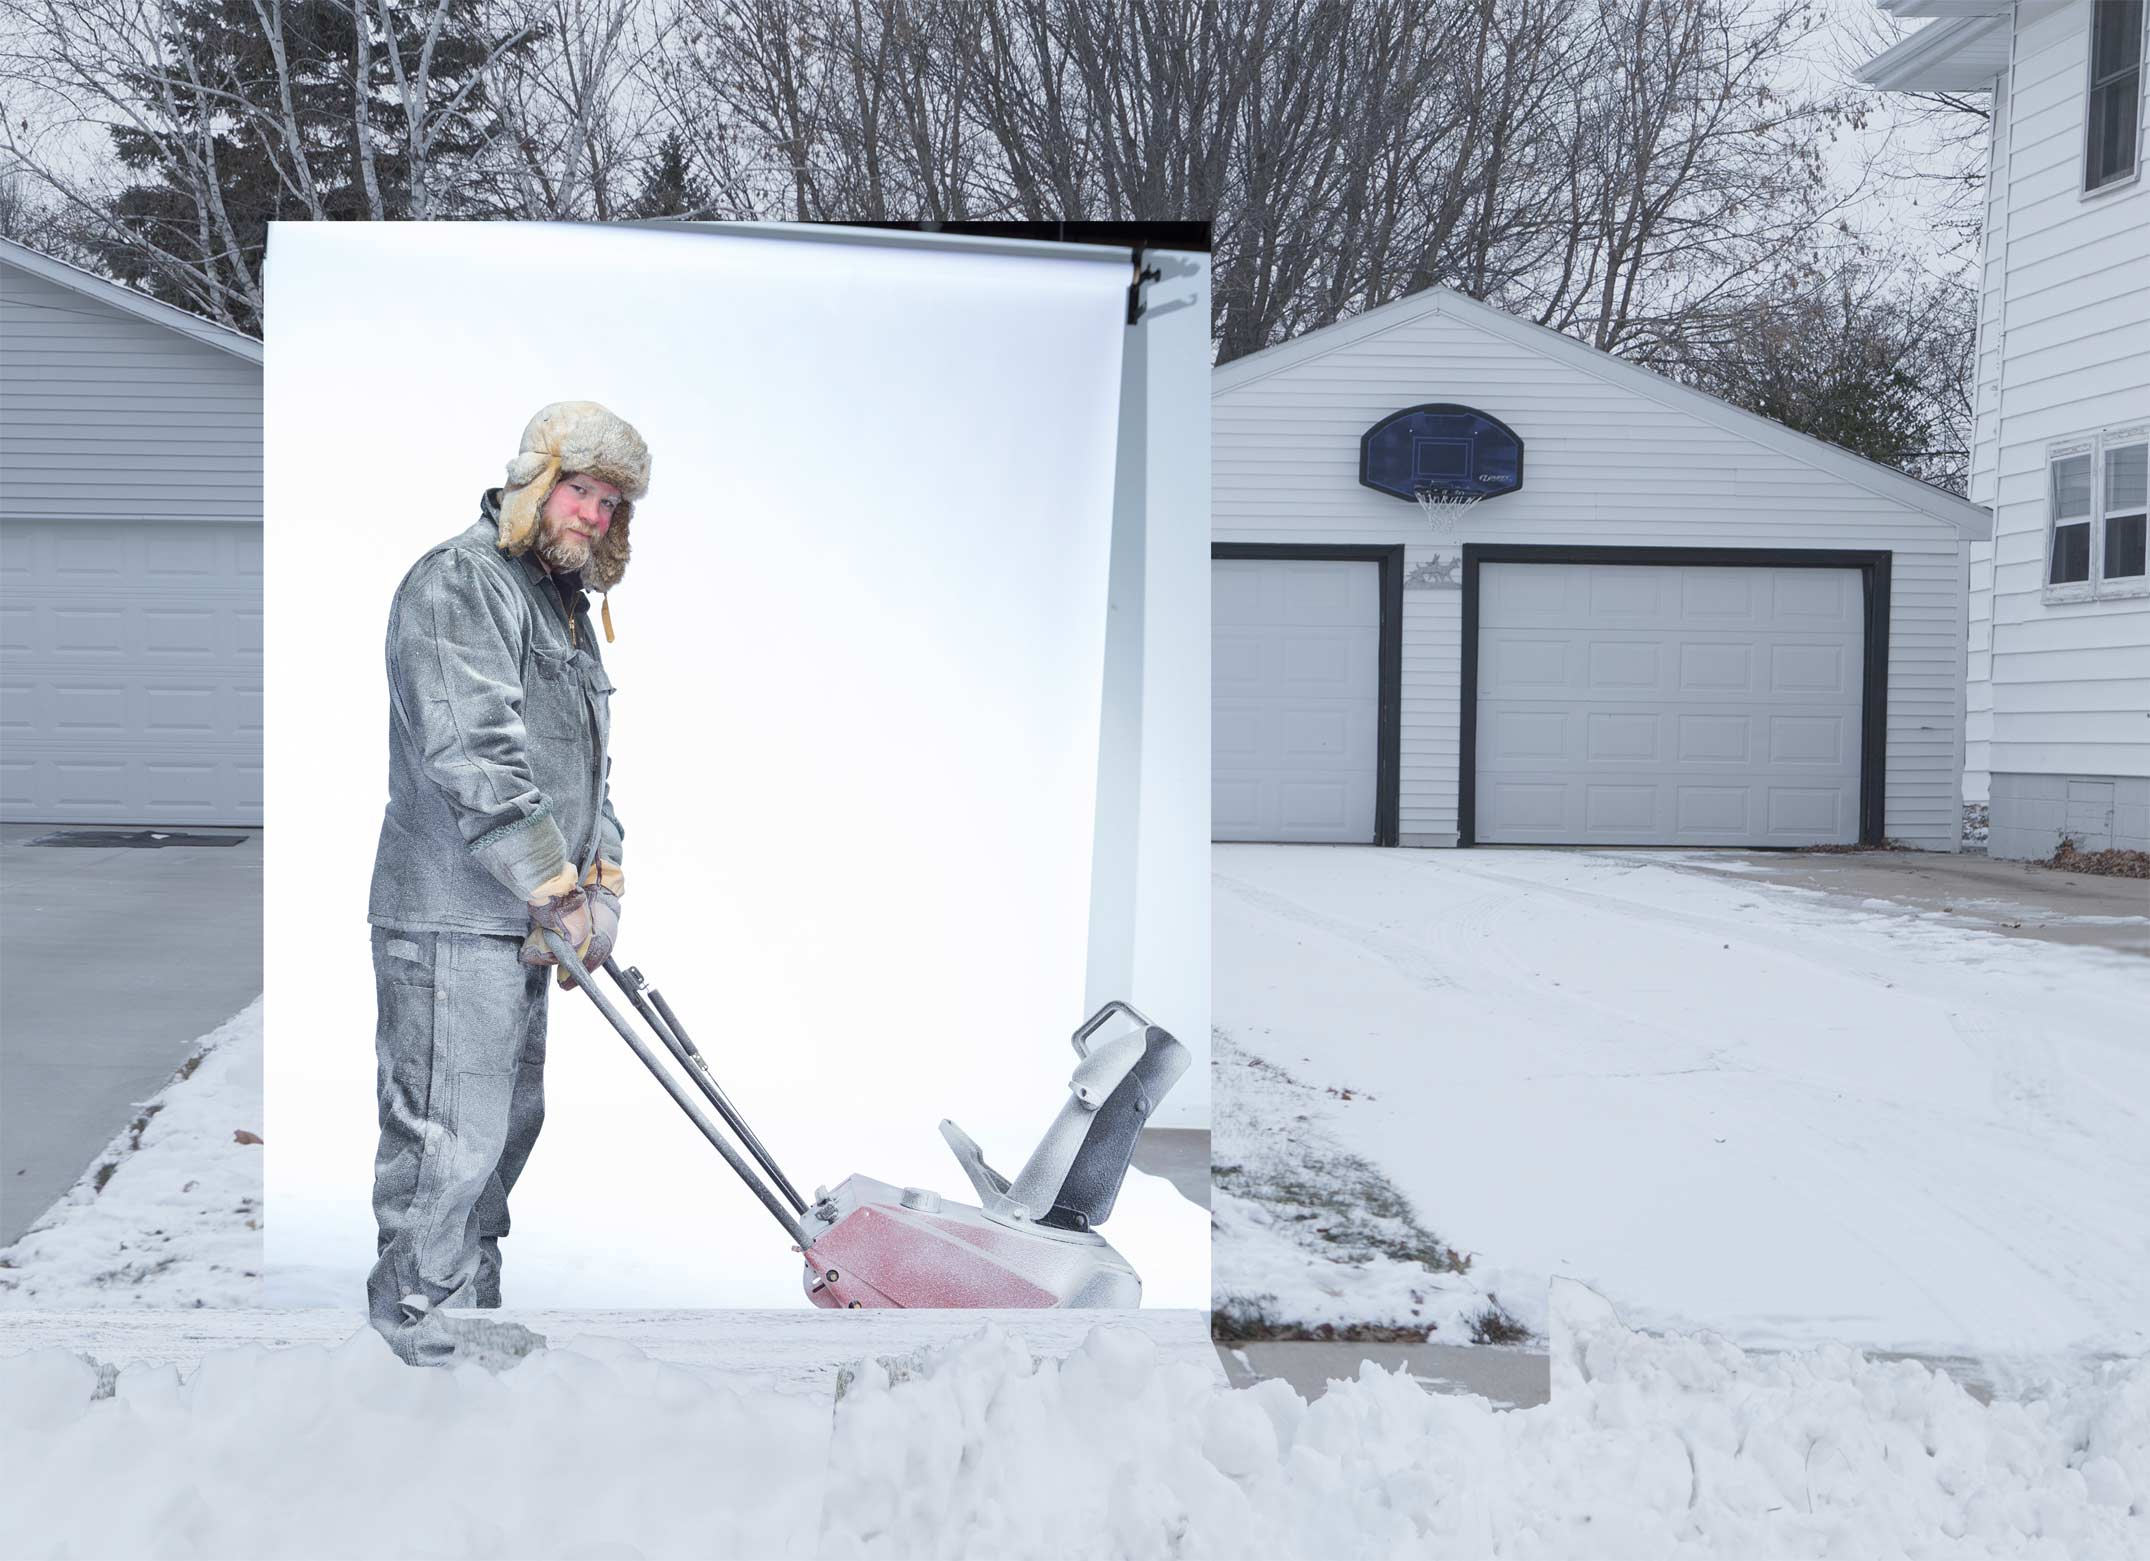 SNOWBLOWER-RETOUCH-A